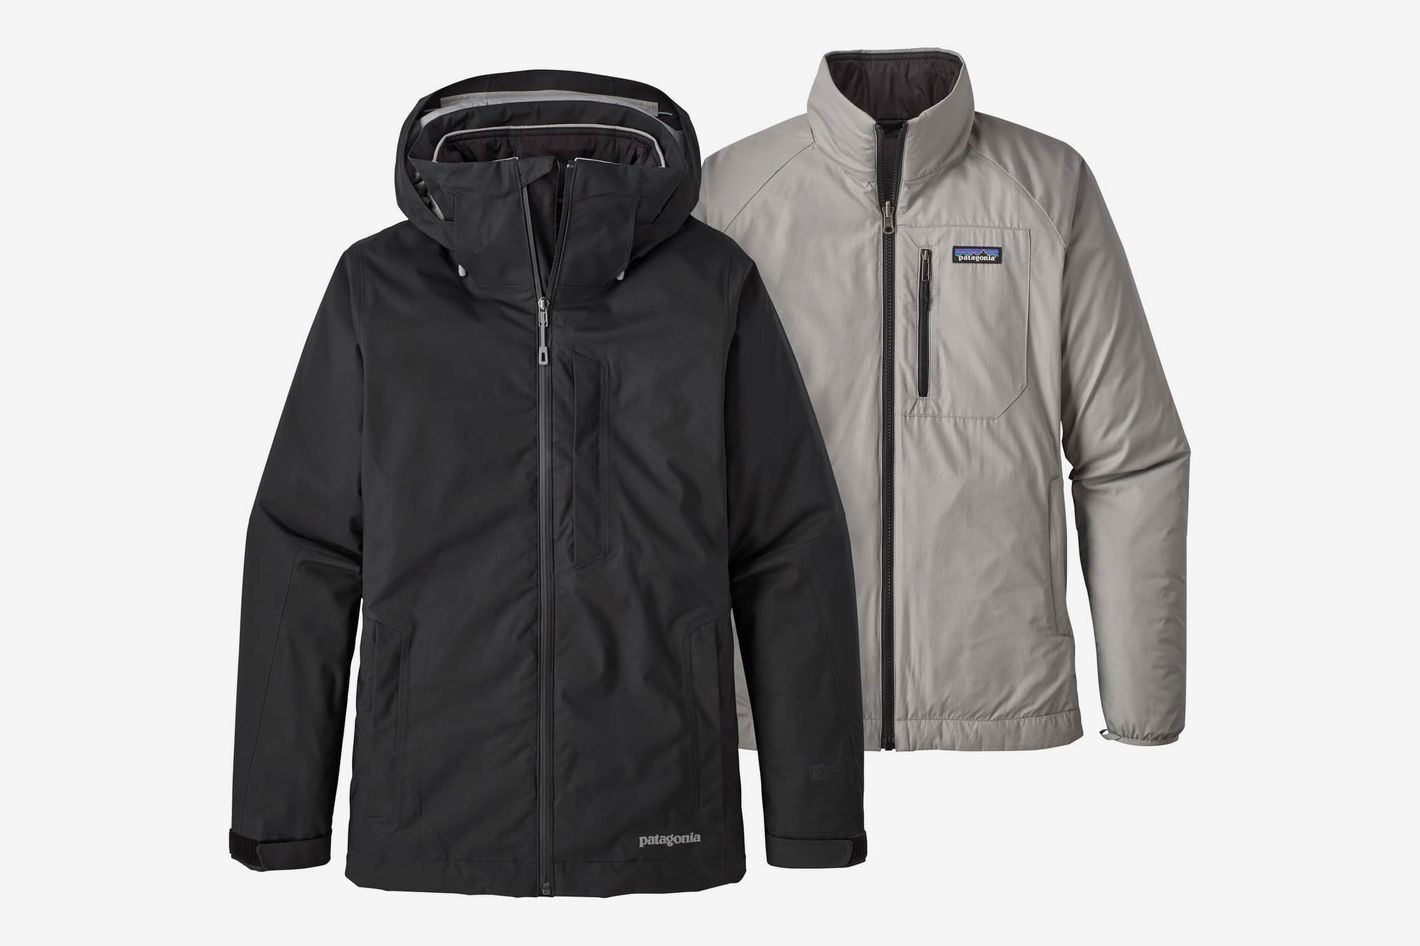 Patagonia Snowbelle 3-in-1 Jacket (Women's)